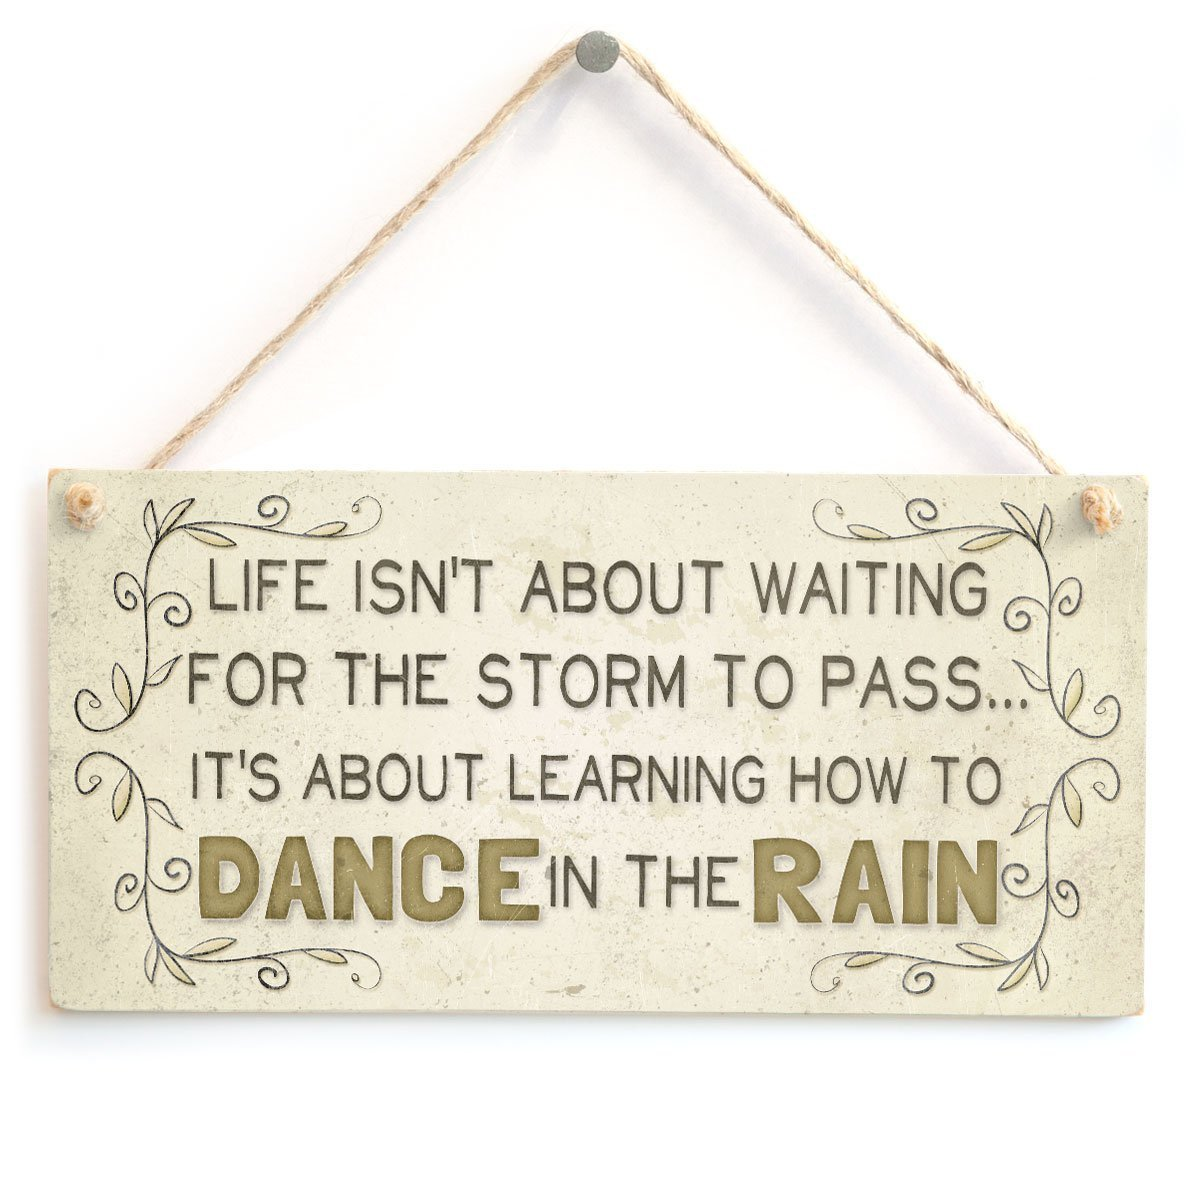 Meijiafei Life isn't about waiting for the storm to pass... it's about learning how to dance in the rain - Beautiful Motivational Life Saying Home Accessory Gift Sign